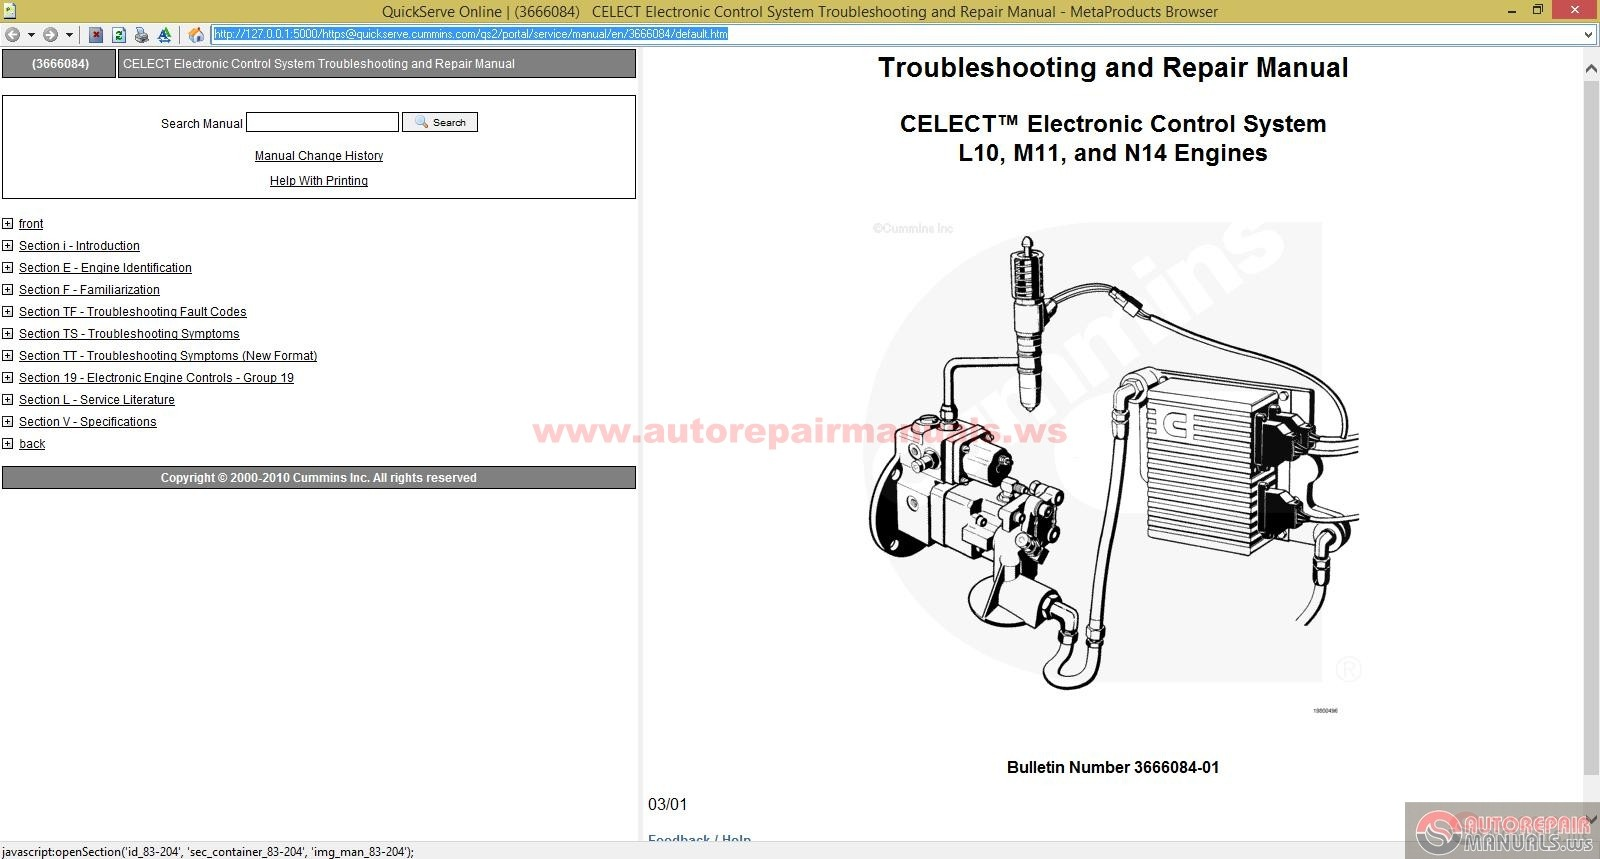 cummins celect electronic control system troubleshooting and cummins celect electronic control system troubleshooting and repair manual size 168mb language english type exe contents